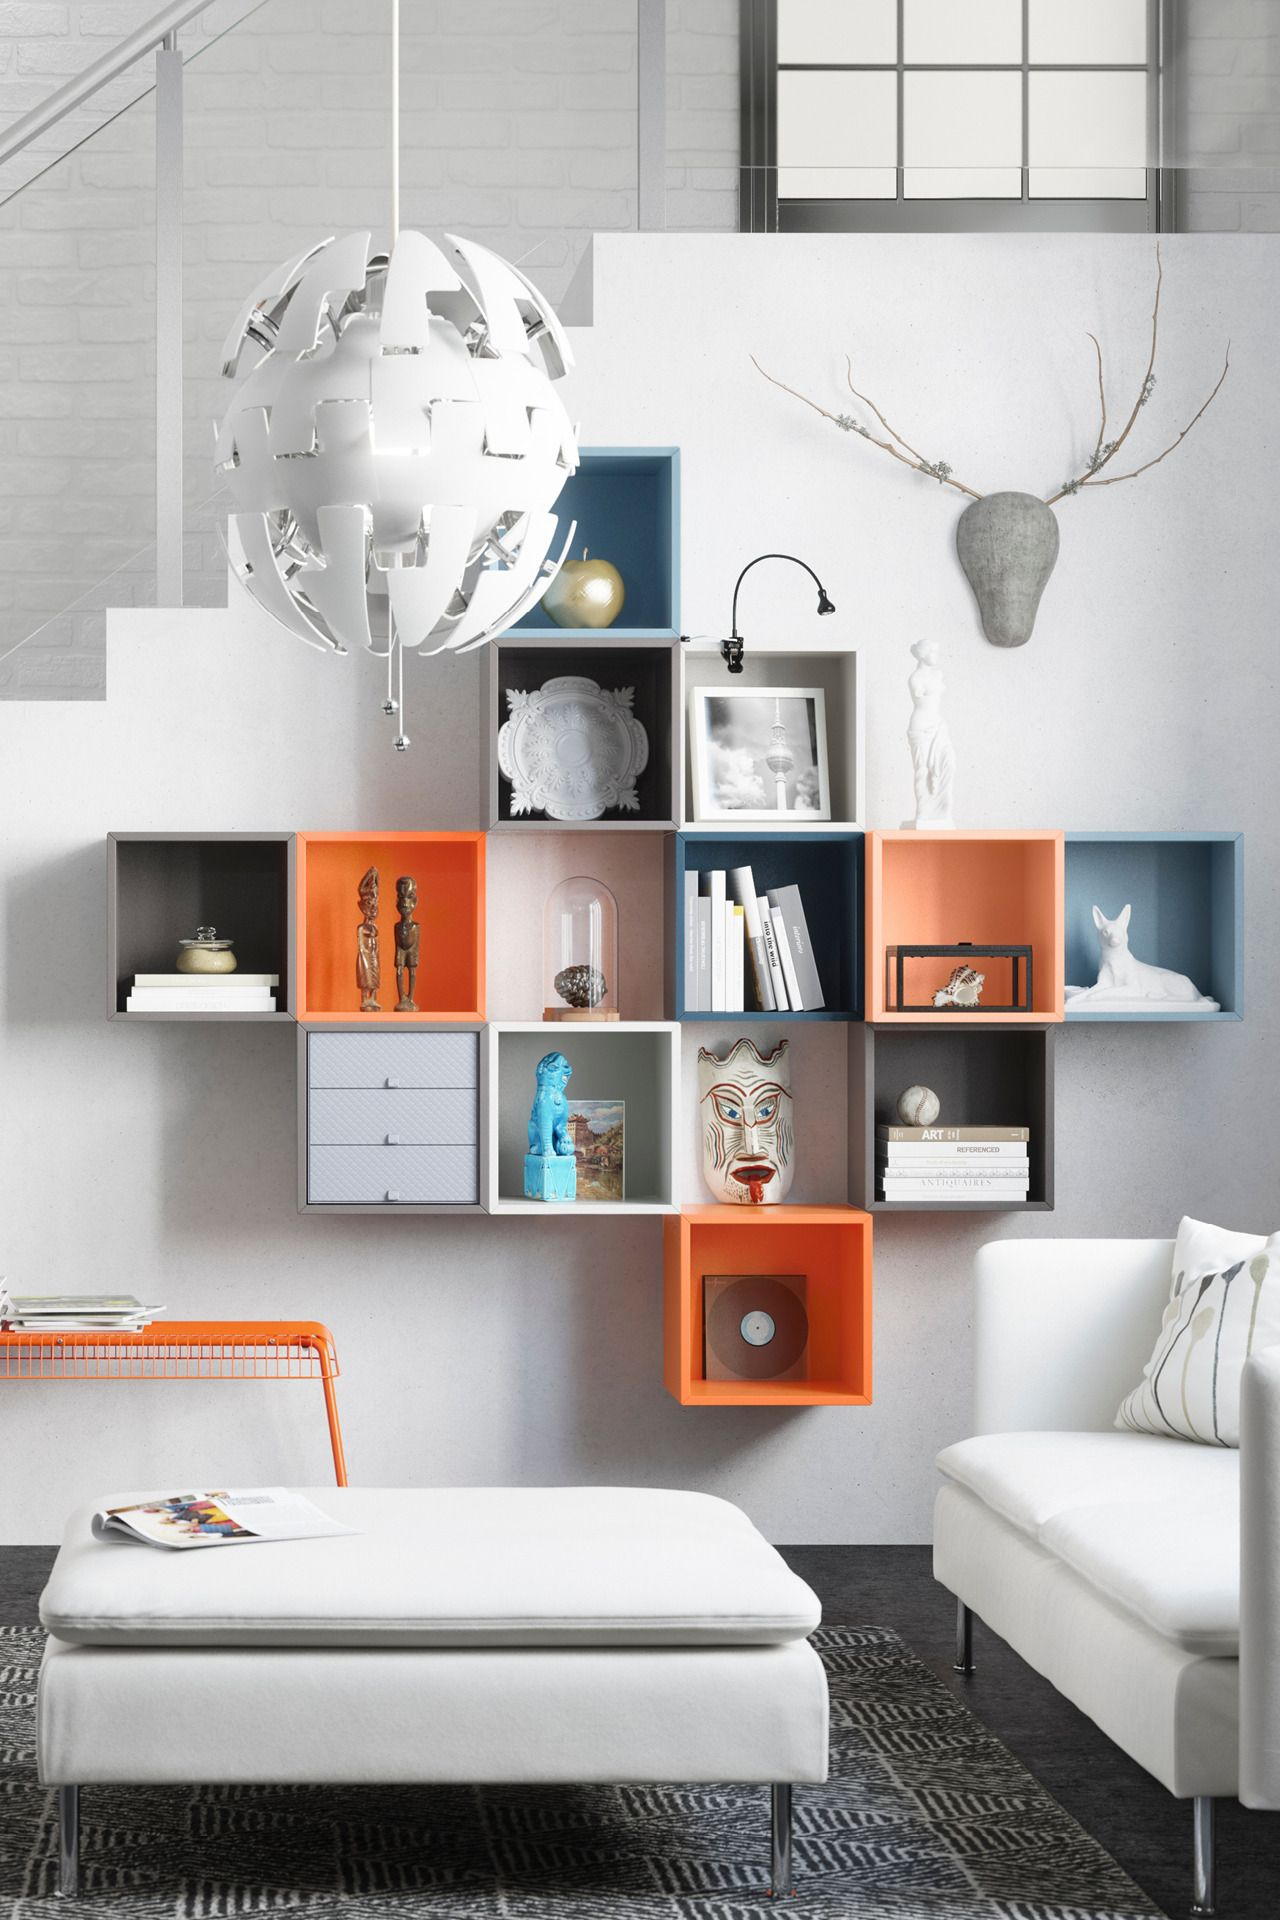 Pin by Love Boy on home Accessories end Furniture♡¤